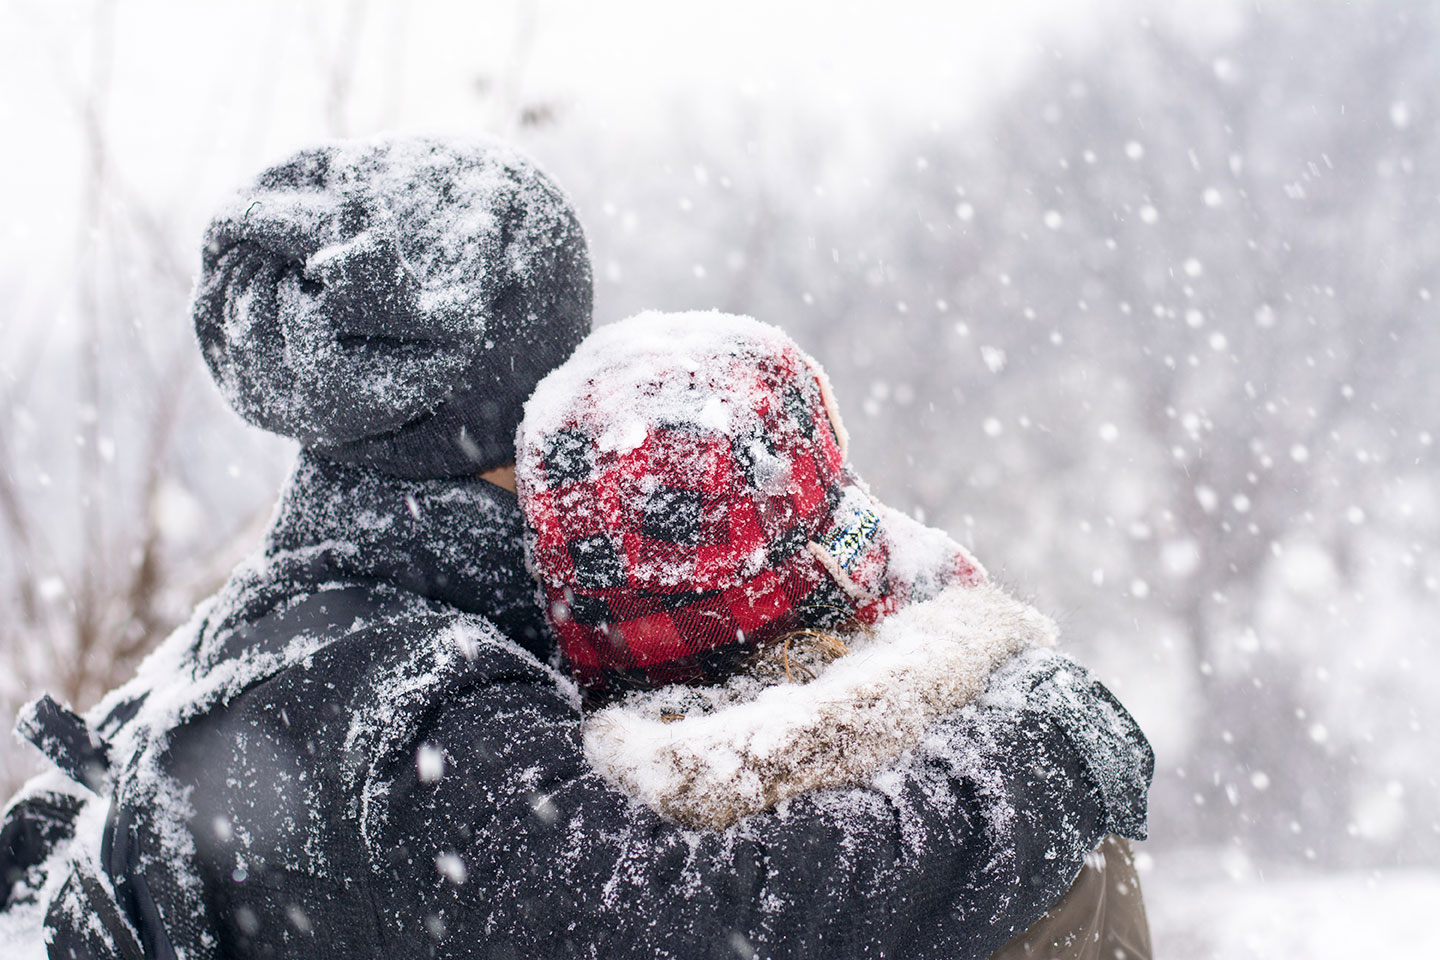 Man and woman standing in falling snow.